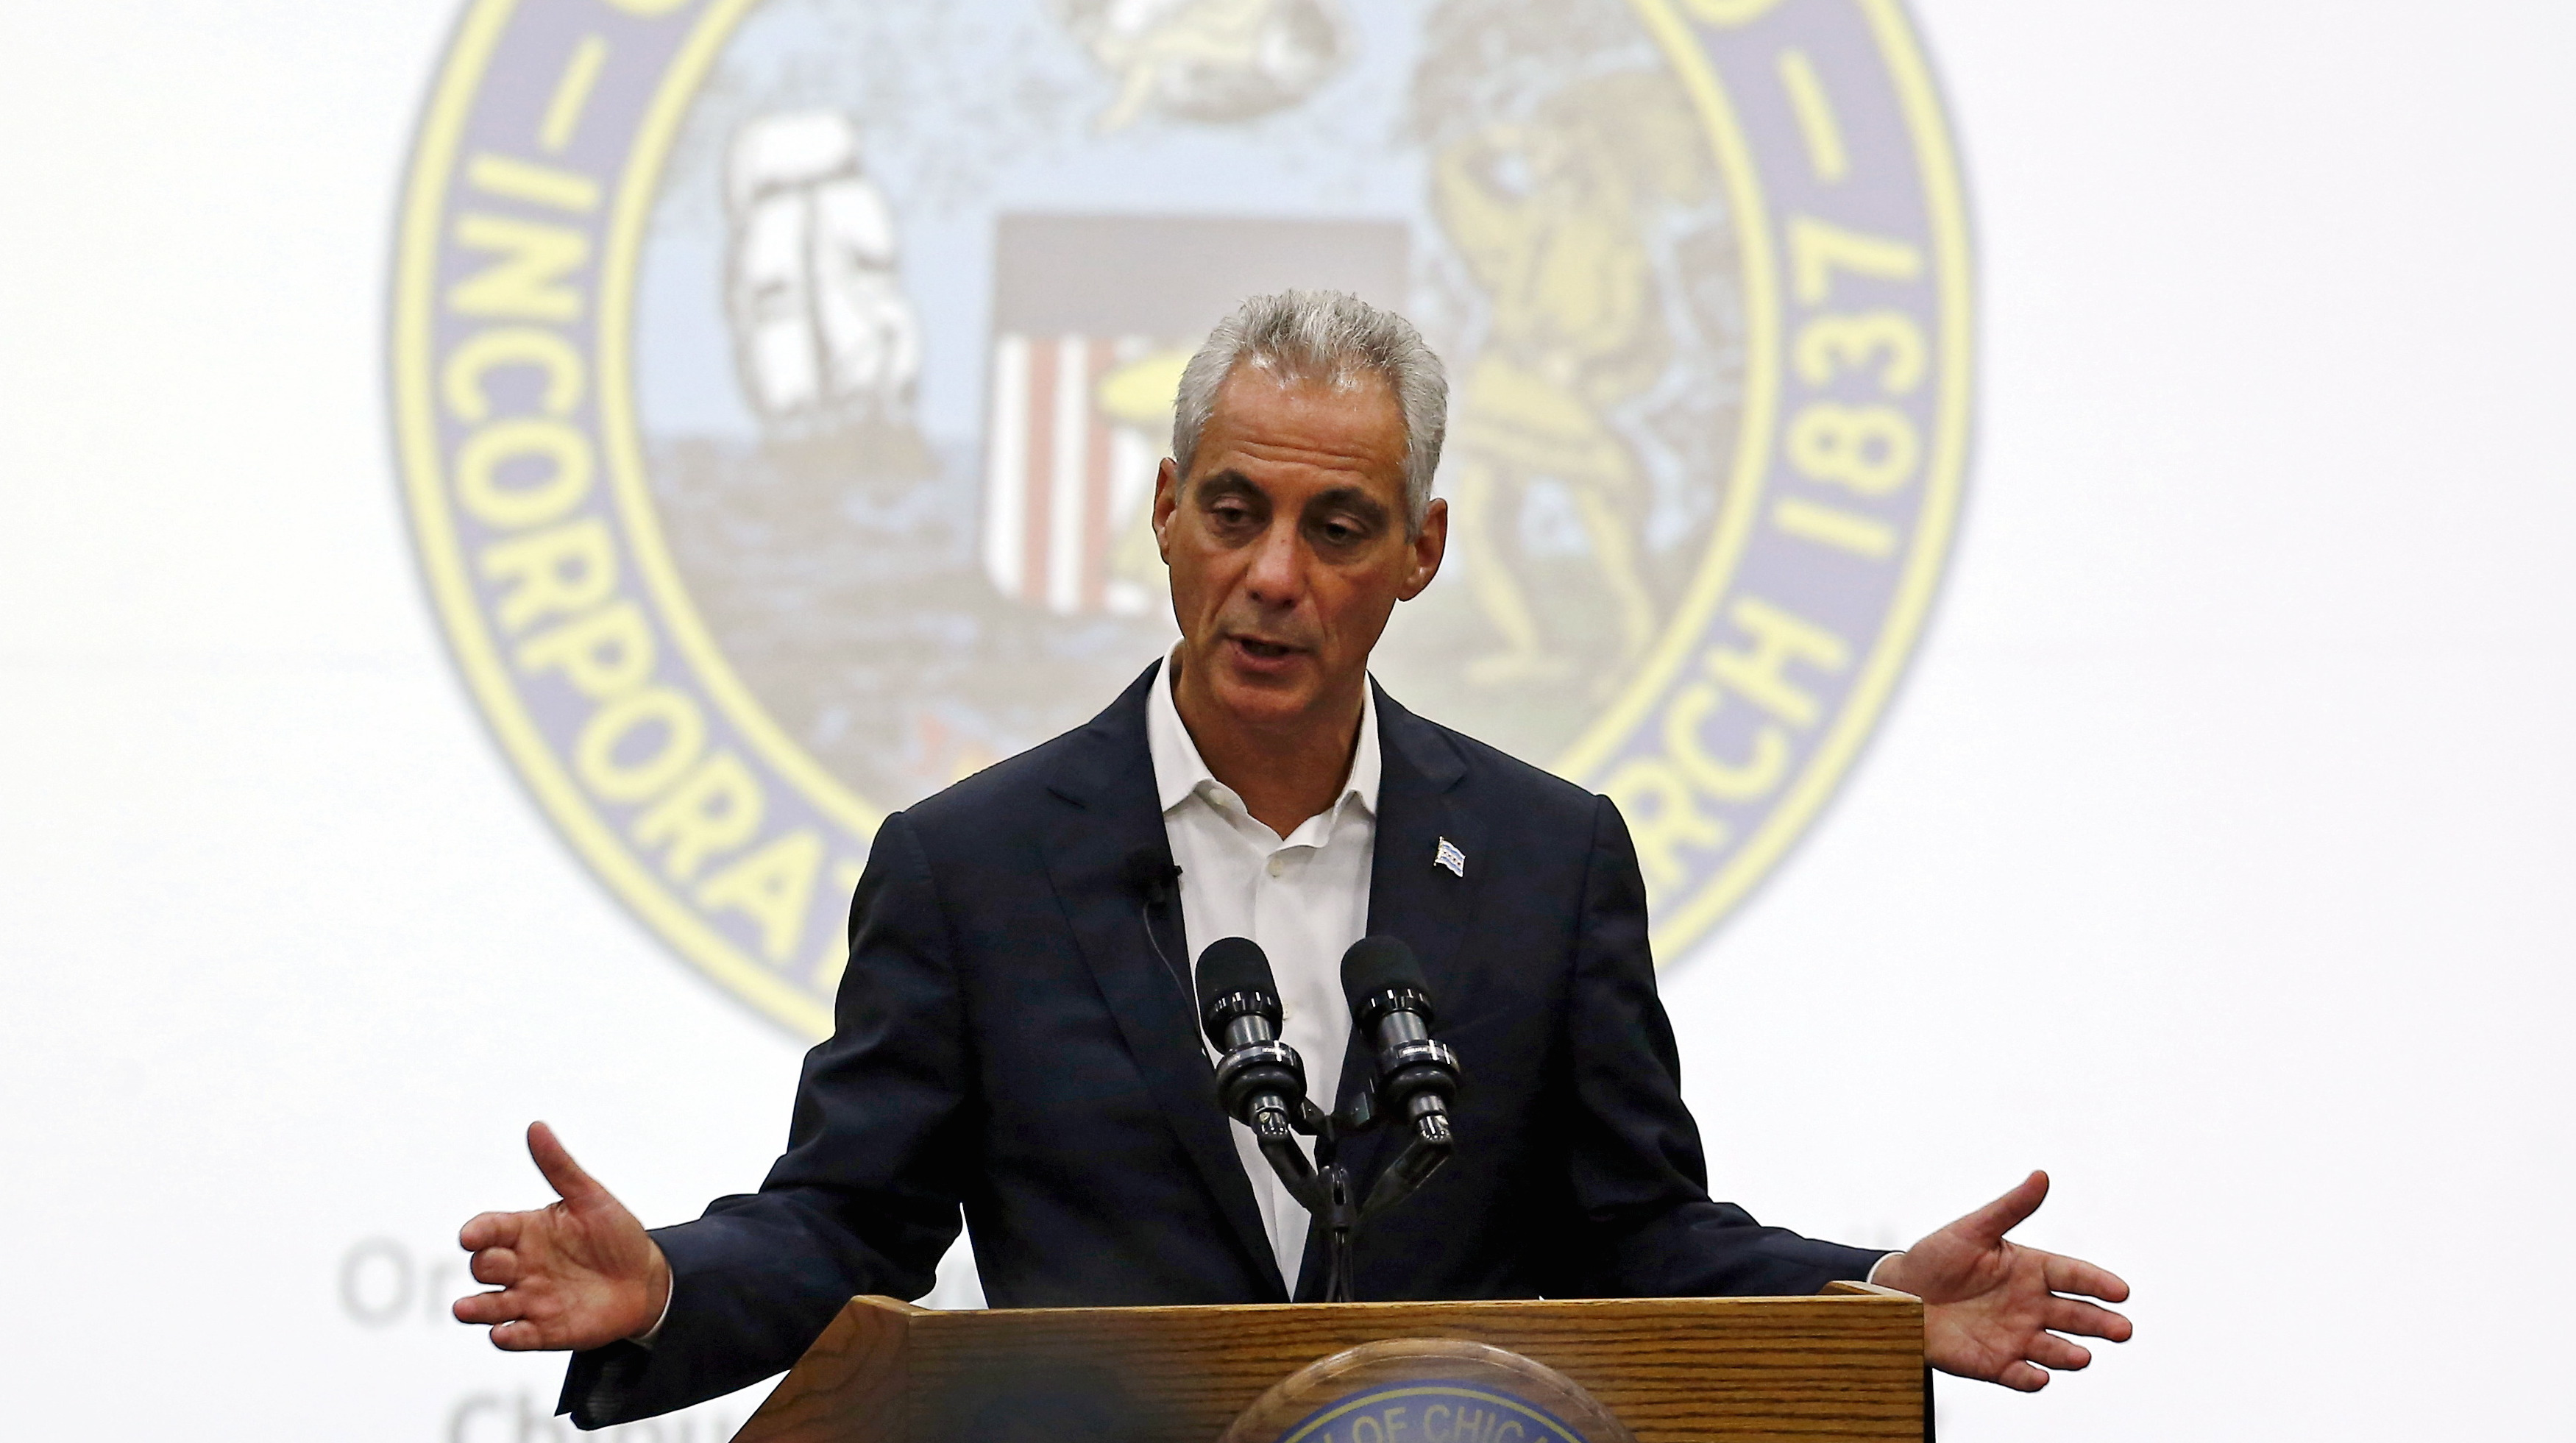 Chicago Mayor Rahm Emanuel speaks at a town hall meeting on the city budget in Chicago, Illinois, United States, August 31, 2015. Emanuel held a rare public forum on Monday as he tried to build support for likely tax hikes and harsh cuts in public services to stem the city's growing financial crisis.    REUTERS/Jim Young   - RTX1QIAW